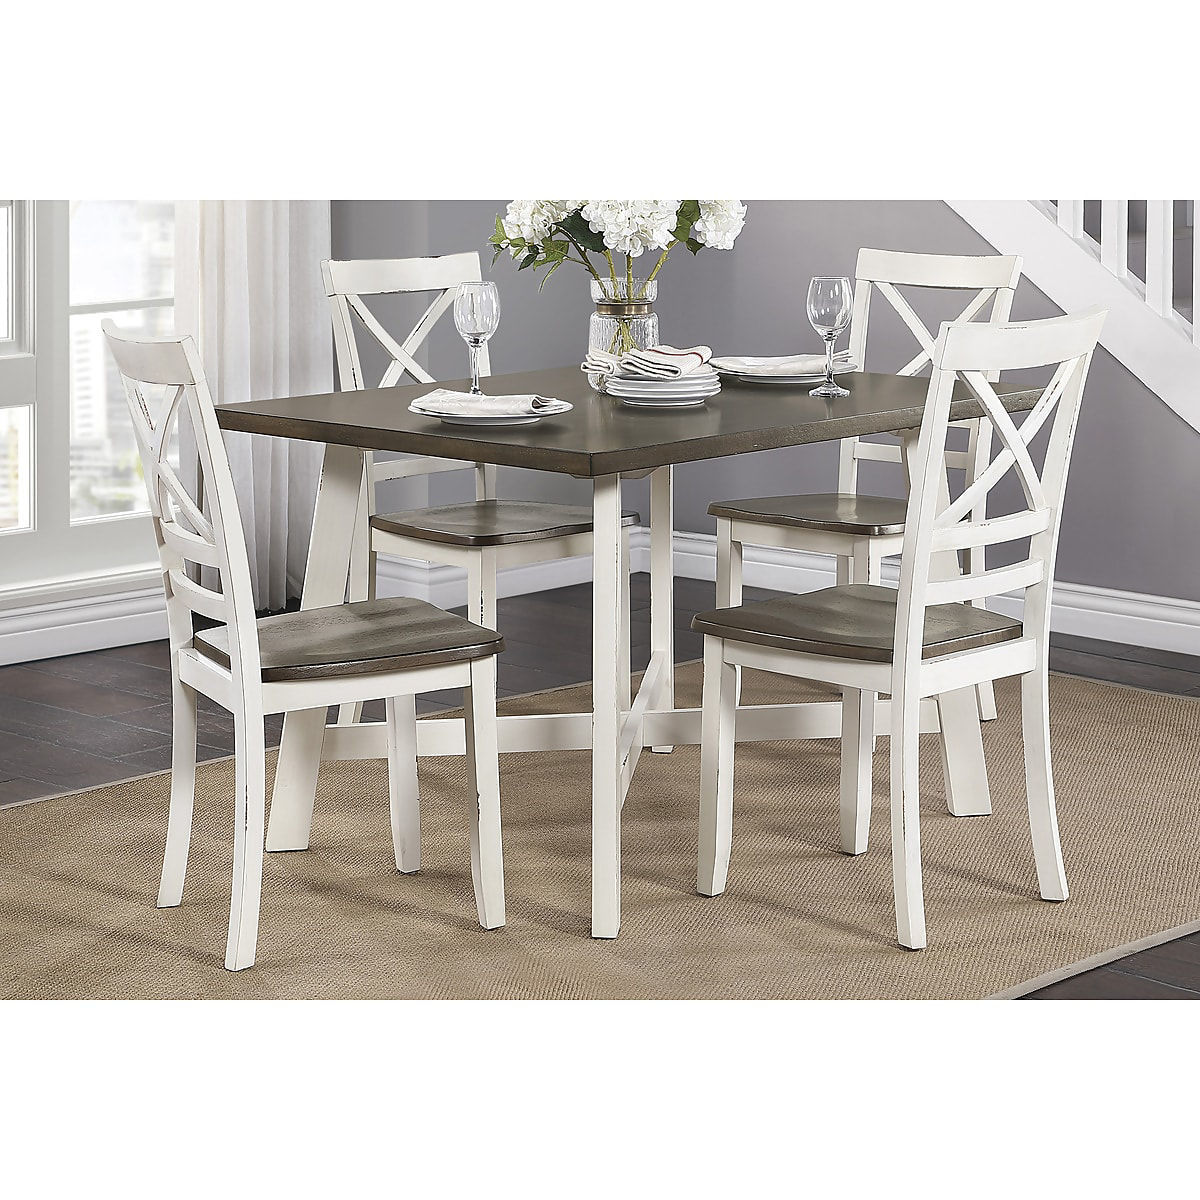 Picture of TROY 2TONE 5PK DINING SET